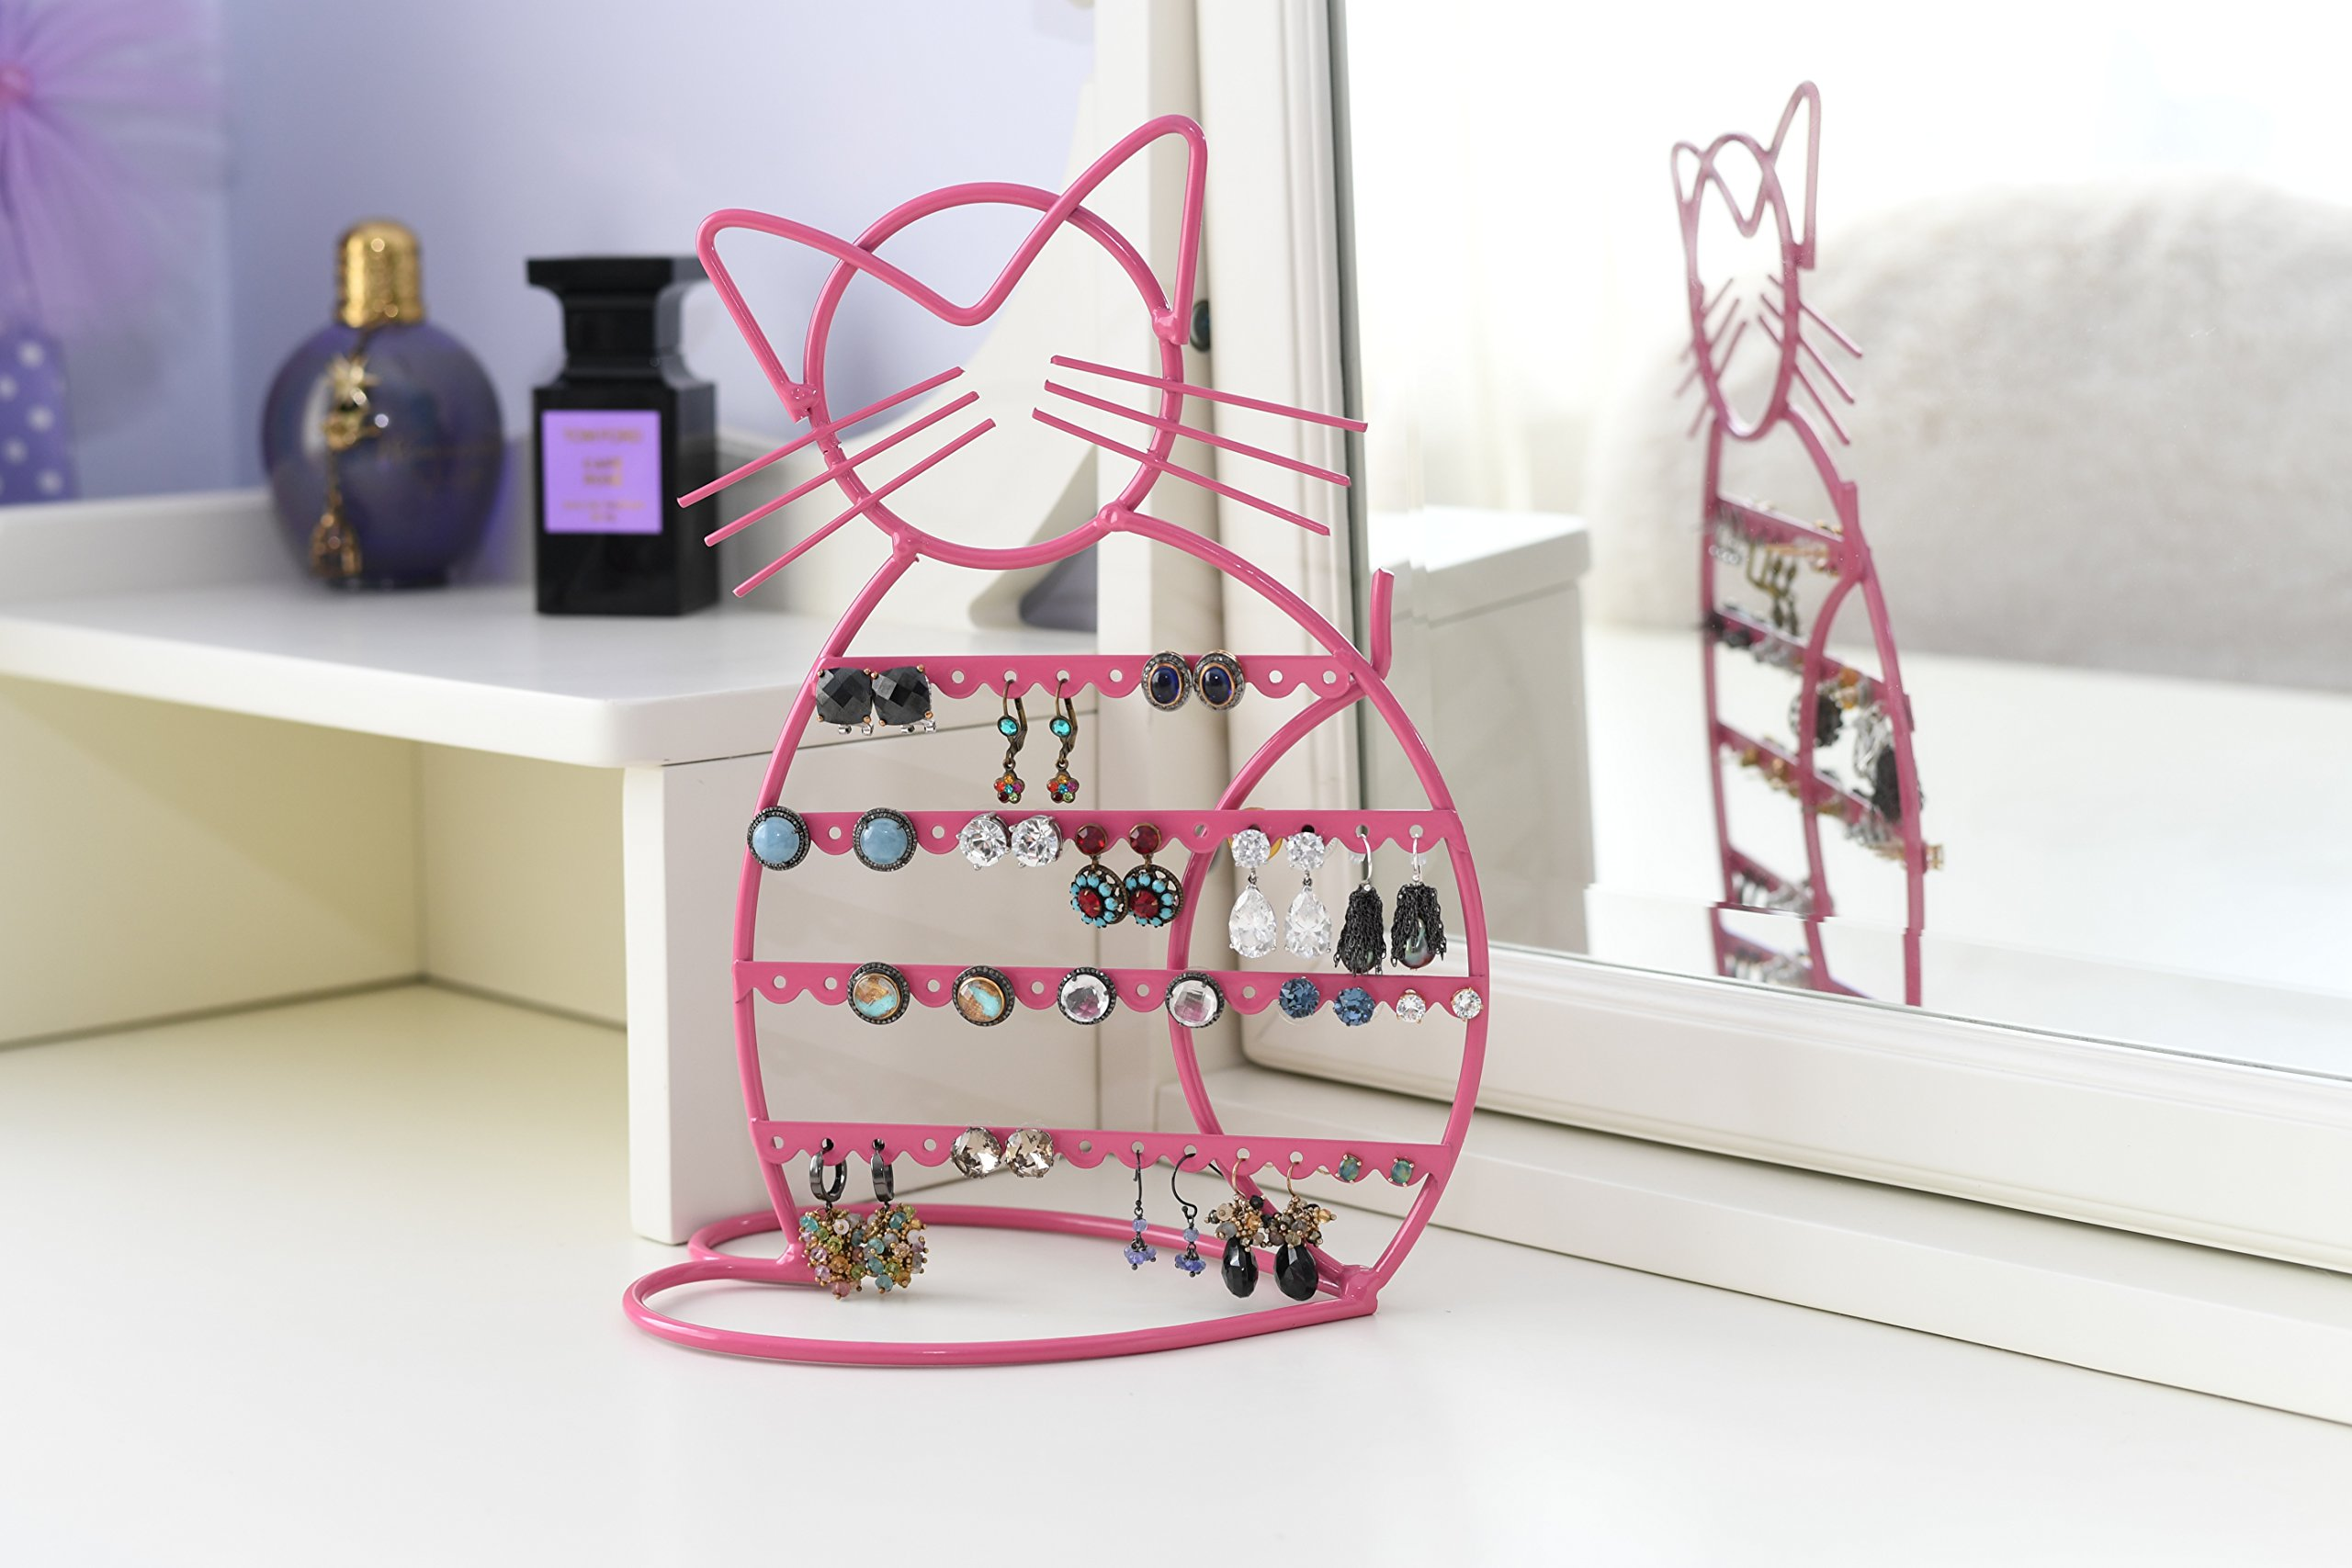 ARAD Metal Jewelry Cat, Holder Organizer-Hanging Jewelry Display Earrings & Other Piercings by ARAD (Image #9)